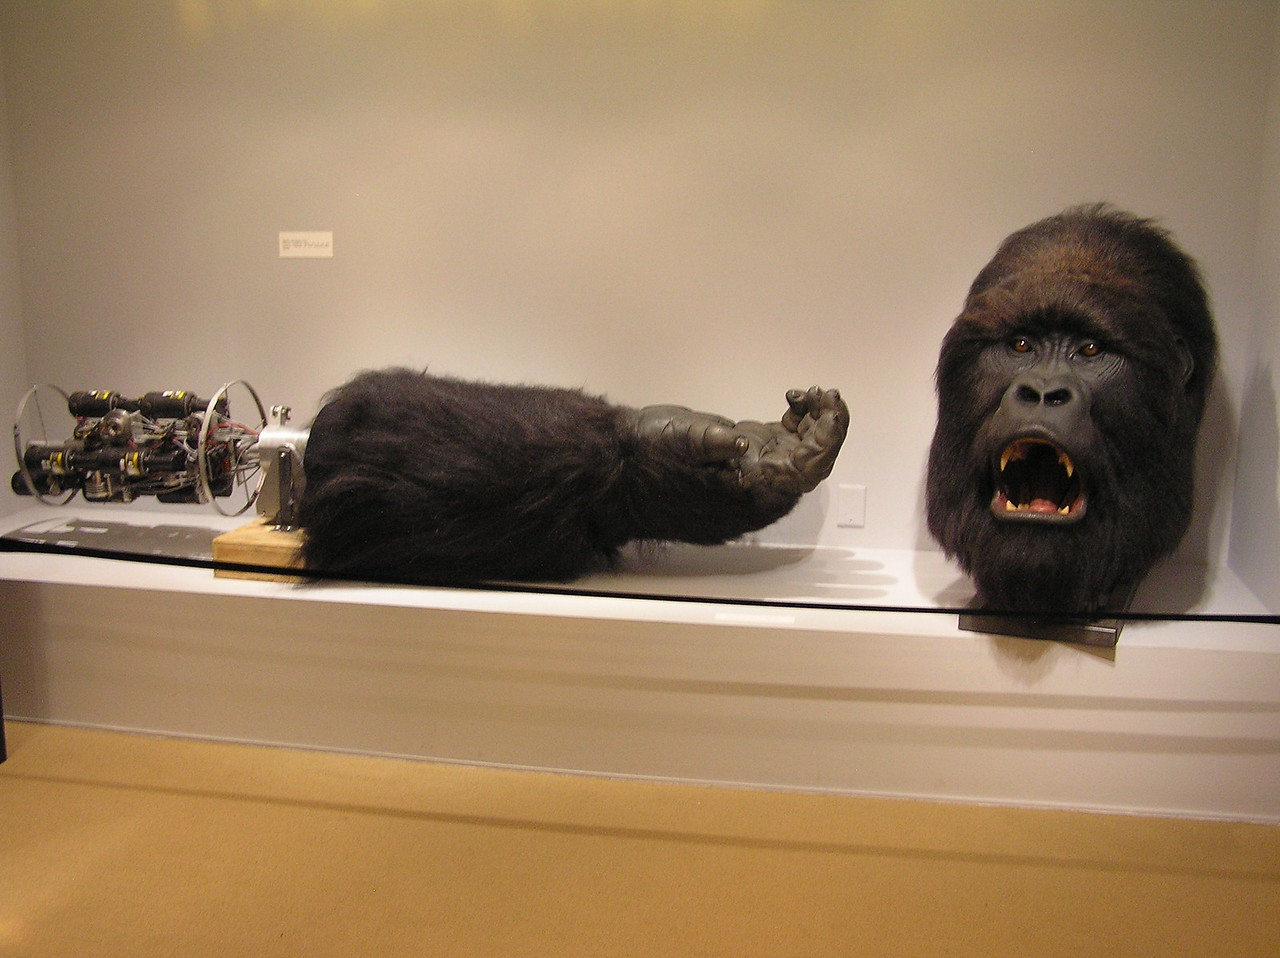 Arm and head for <i>Mighty Joe Young</i> (1998). I wish I had gotten some scale in this photo, as these are much larger than a human's arm and head.